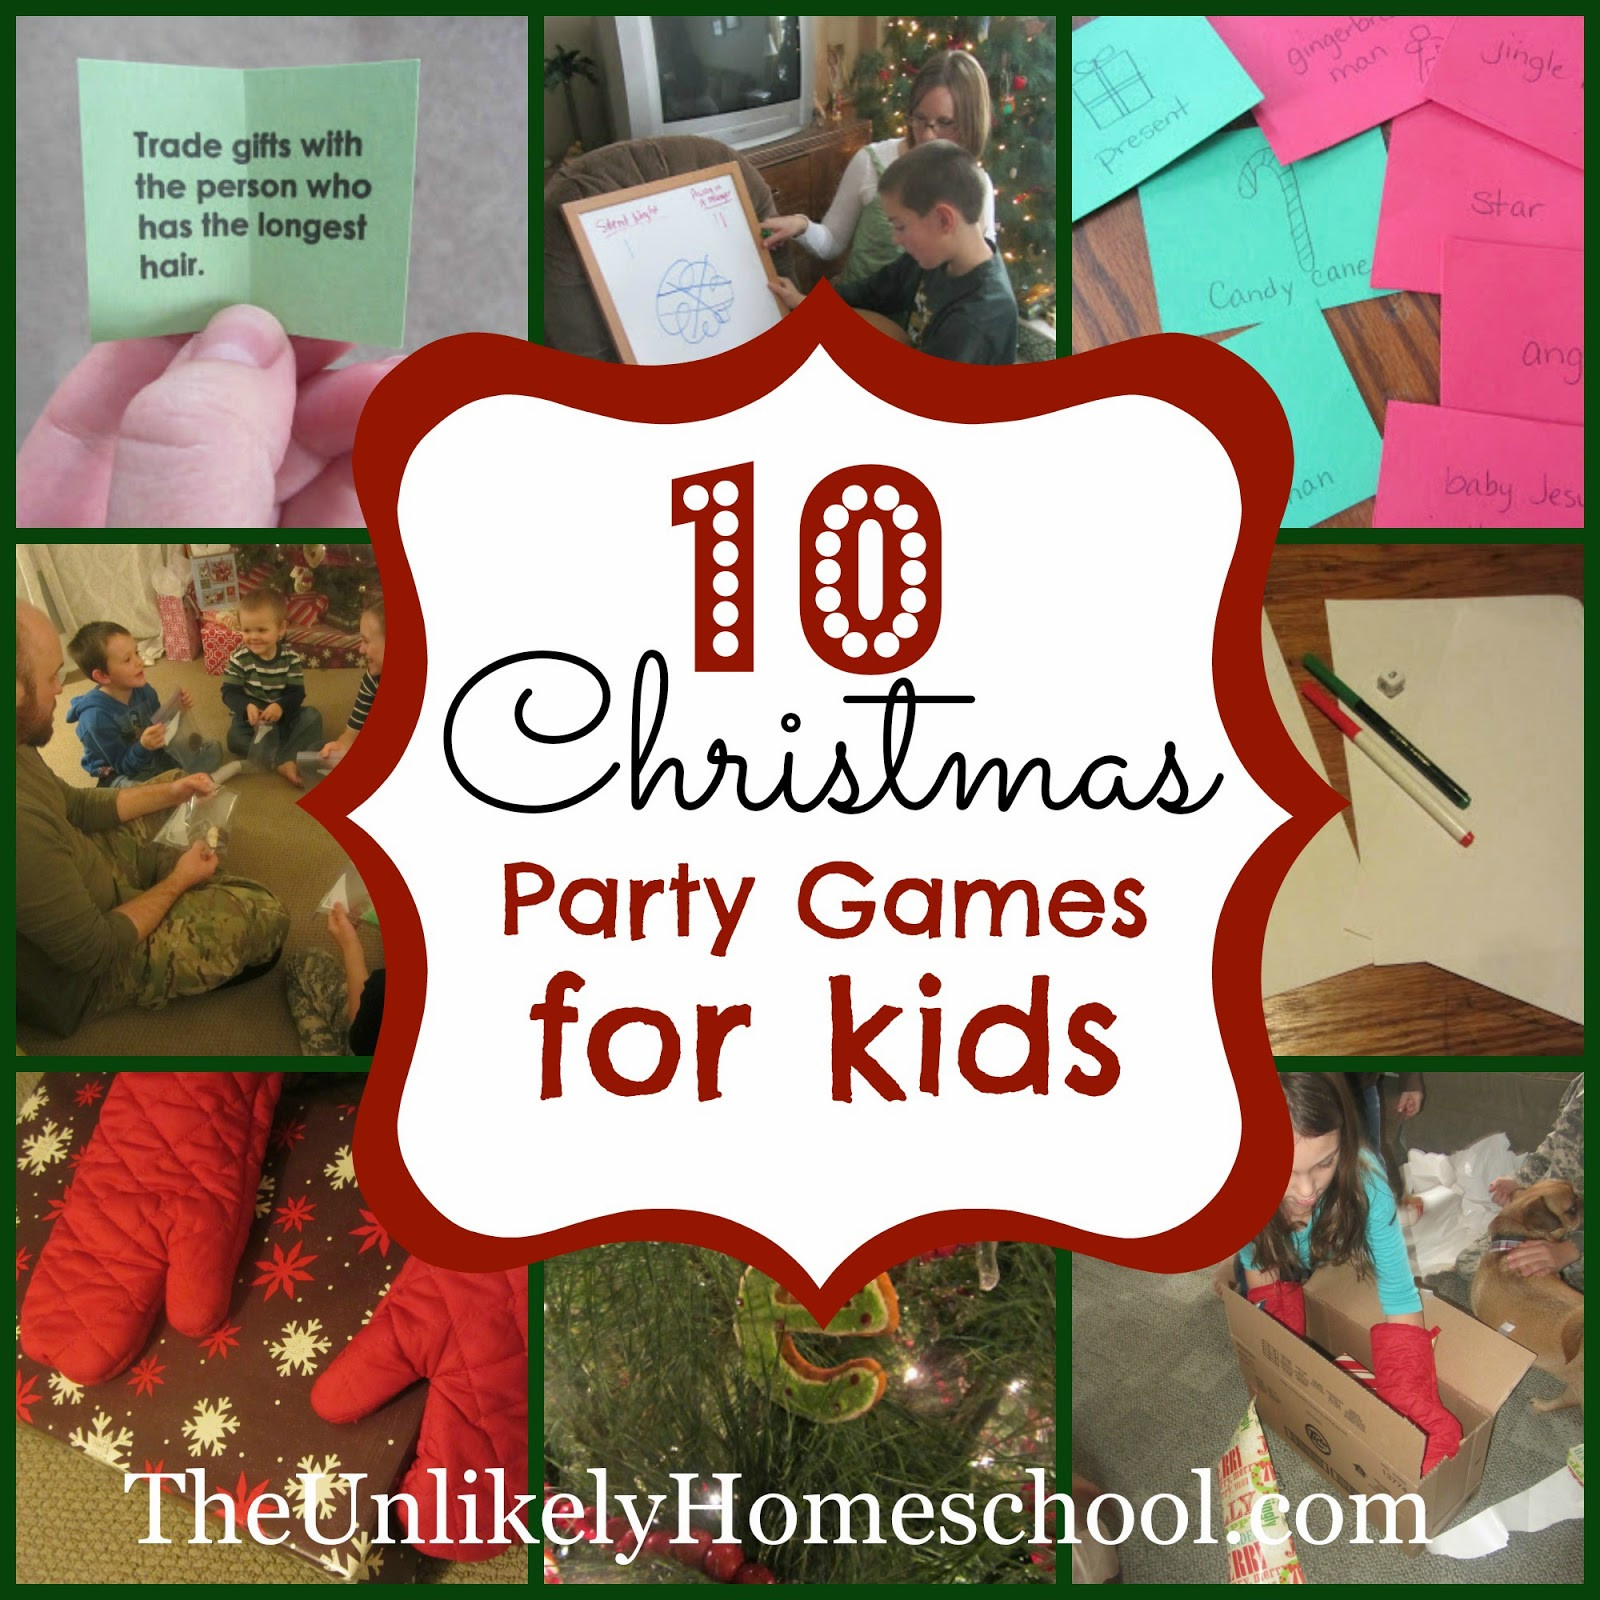 Christmas Party Game Ideas For Kids  The Unlikely Homeschool 10 Christmas Party Games for Kids